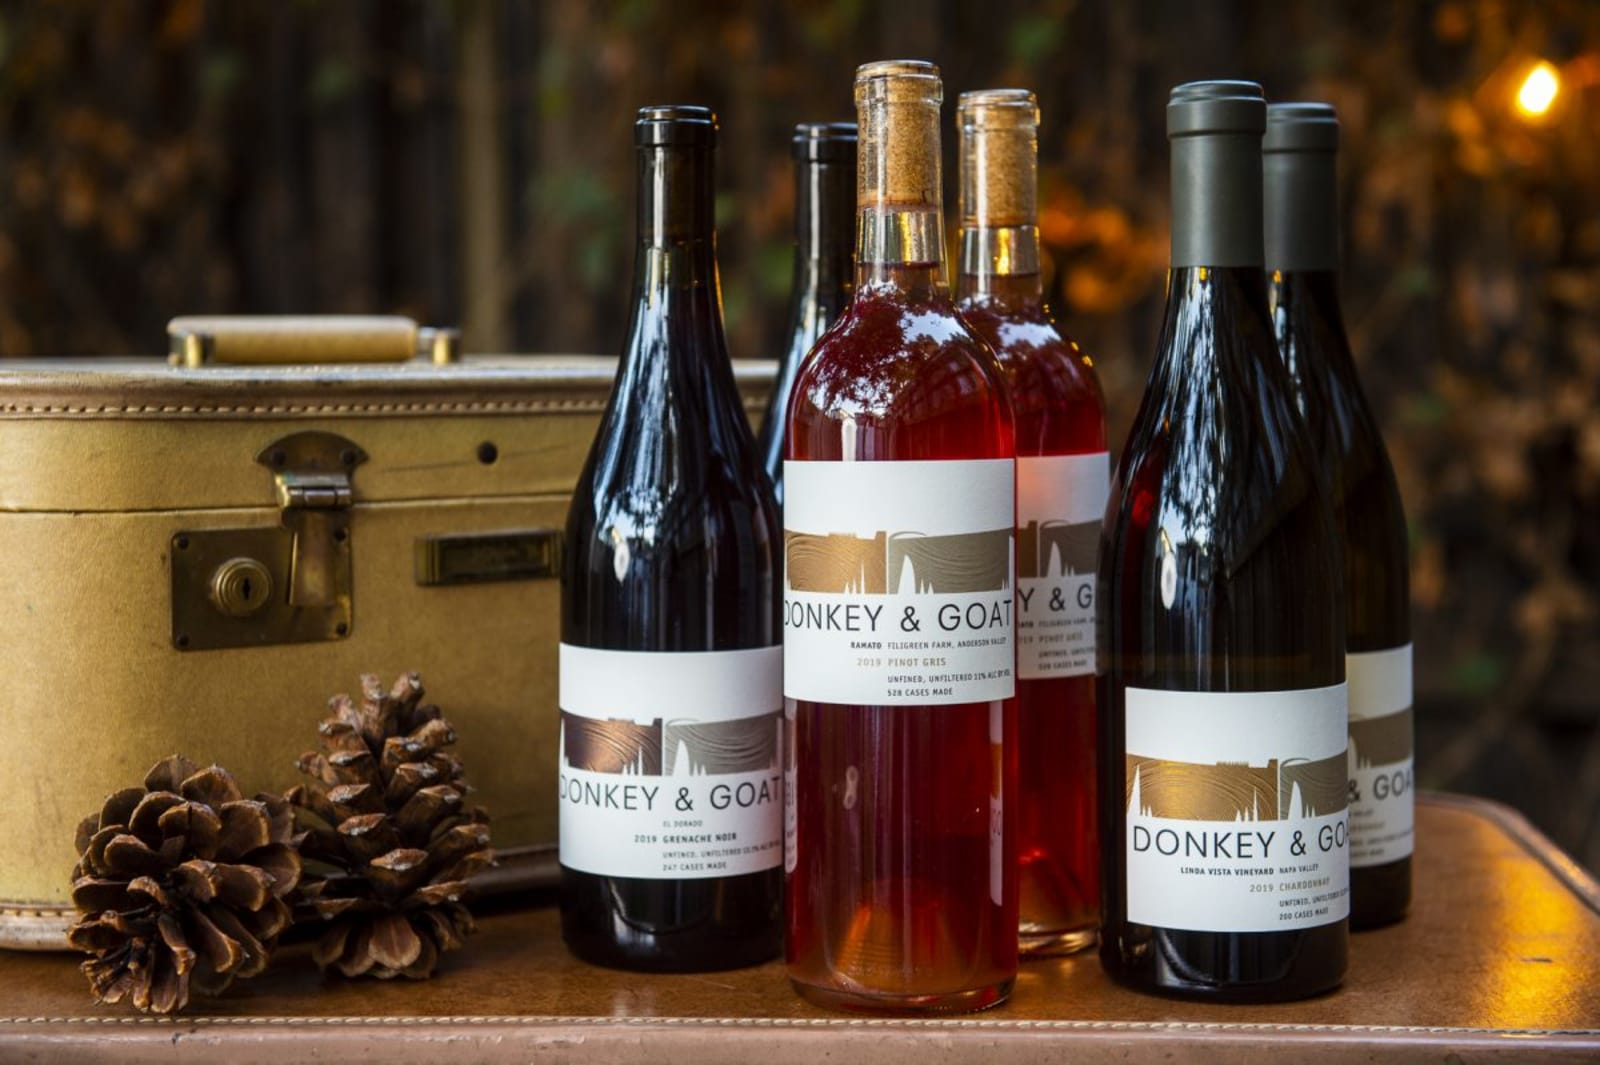 Gifts at Donkey & Goat Winery & Tasting Room